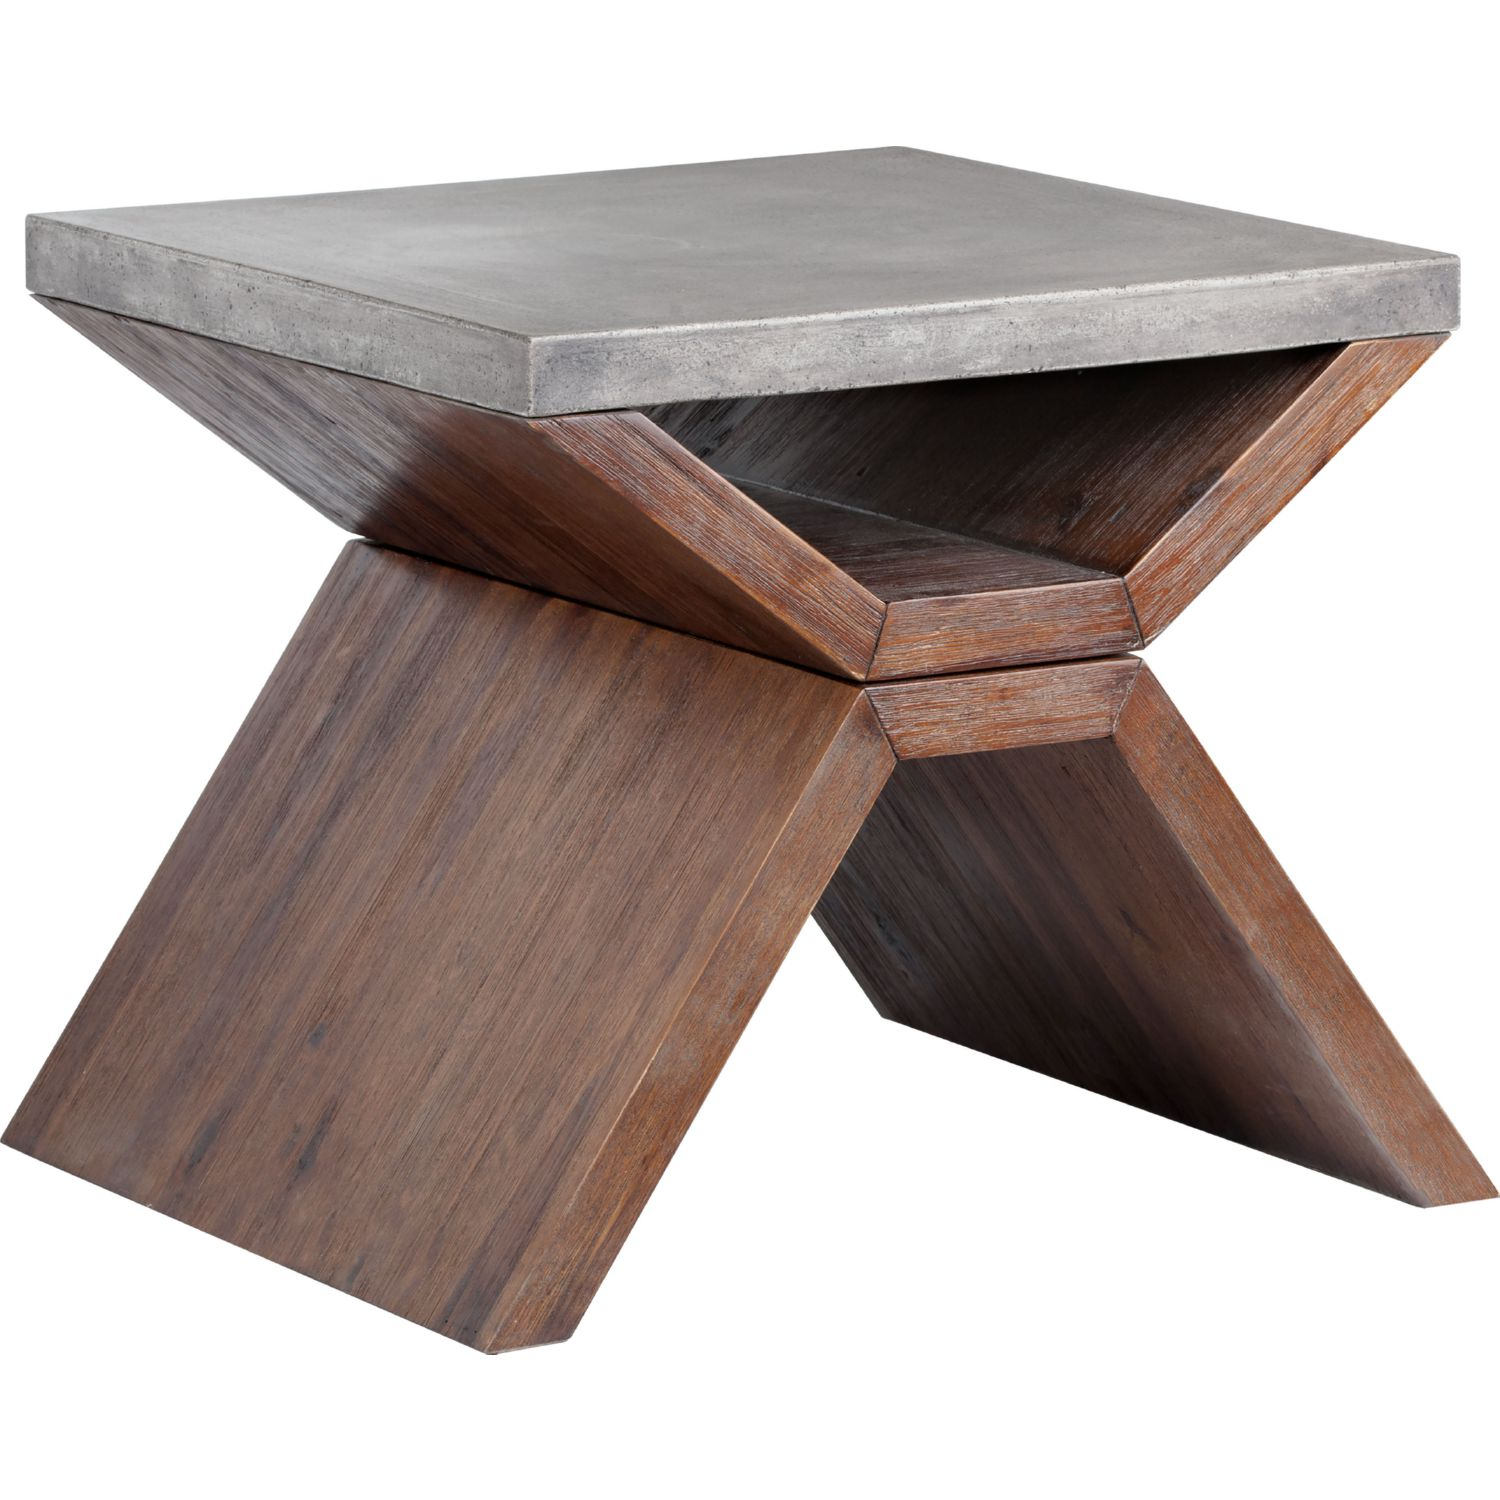 Vixen End Table W/ Concrete Top On Acacia Wood Base